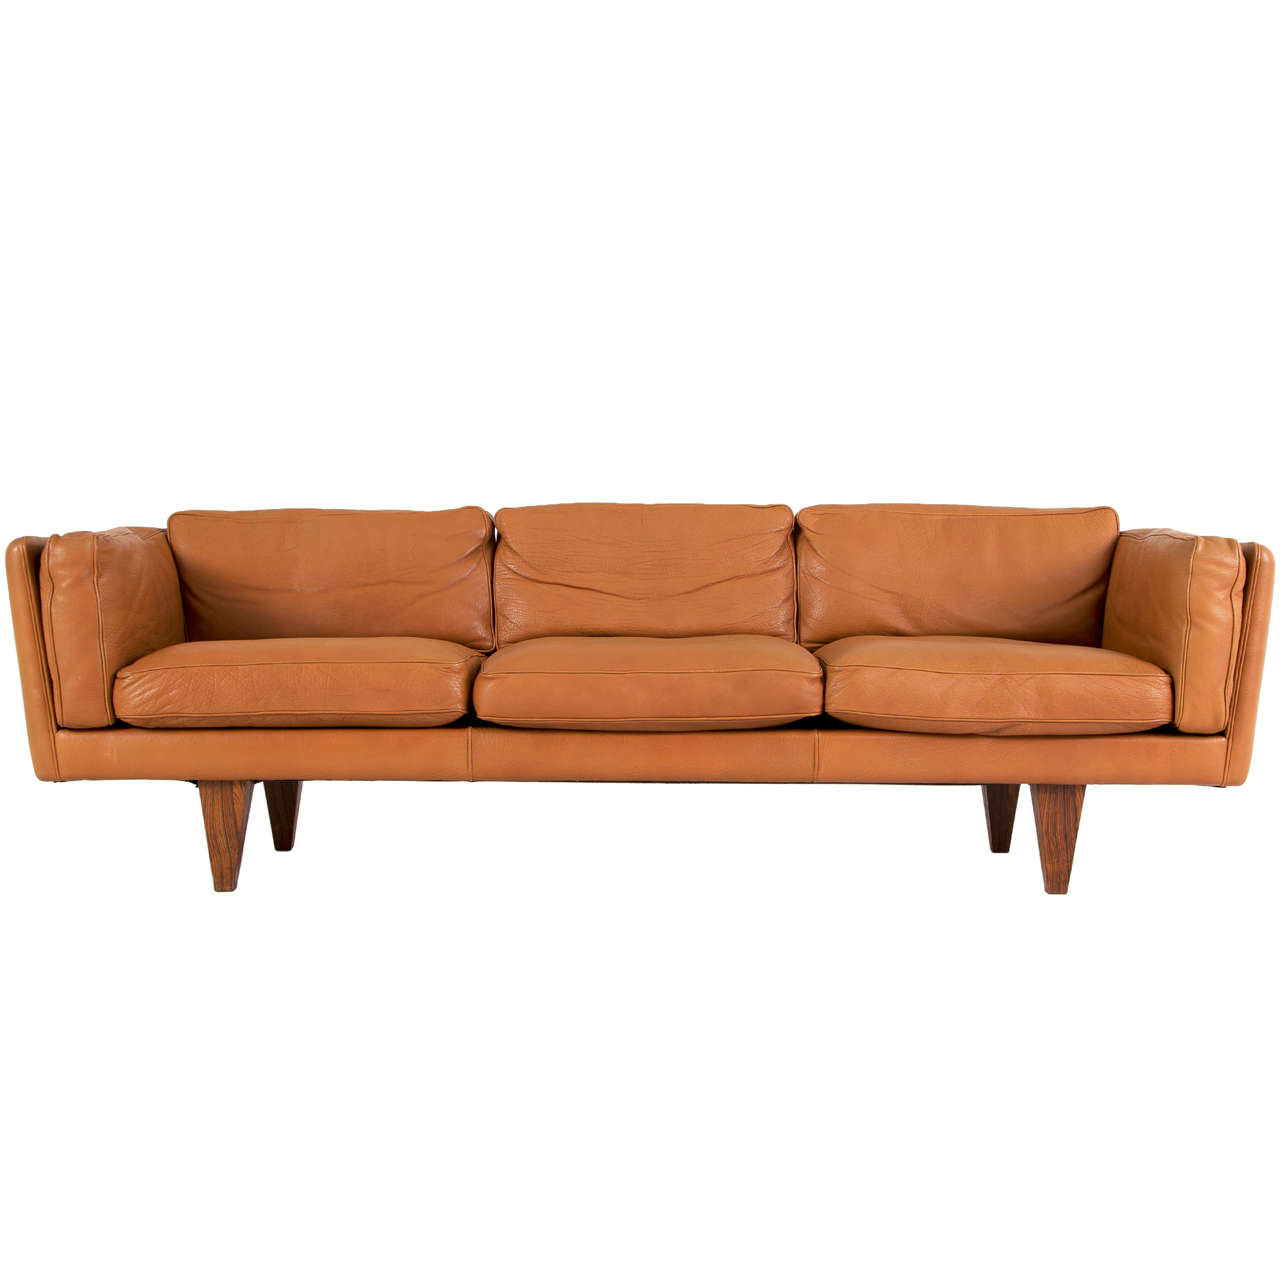 Leather Furniture Buffalo Ny Country Sectional Sofas